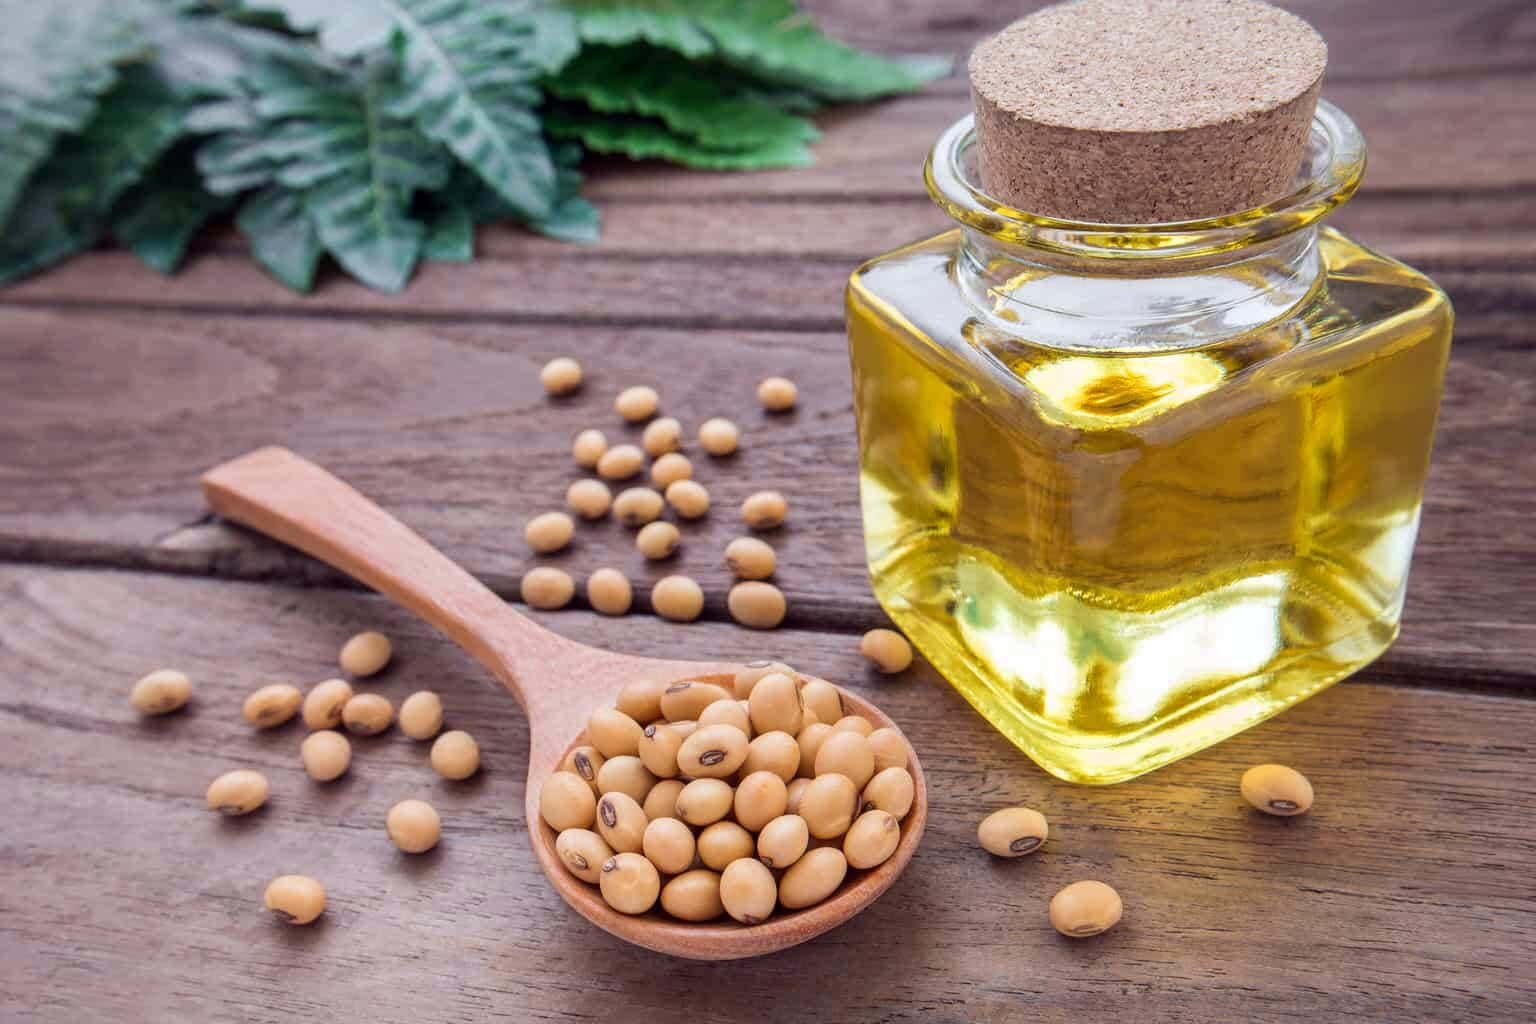 soya-beans and soybean oil on a table